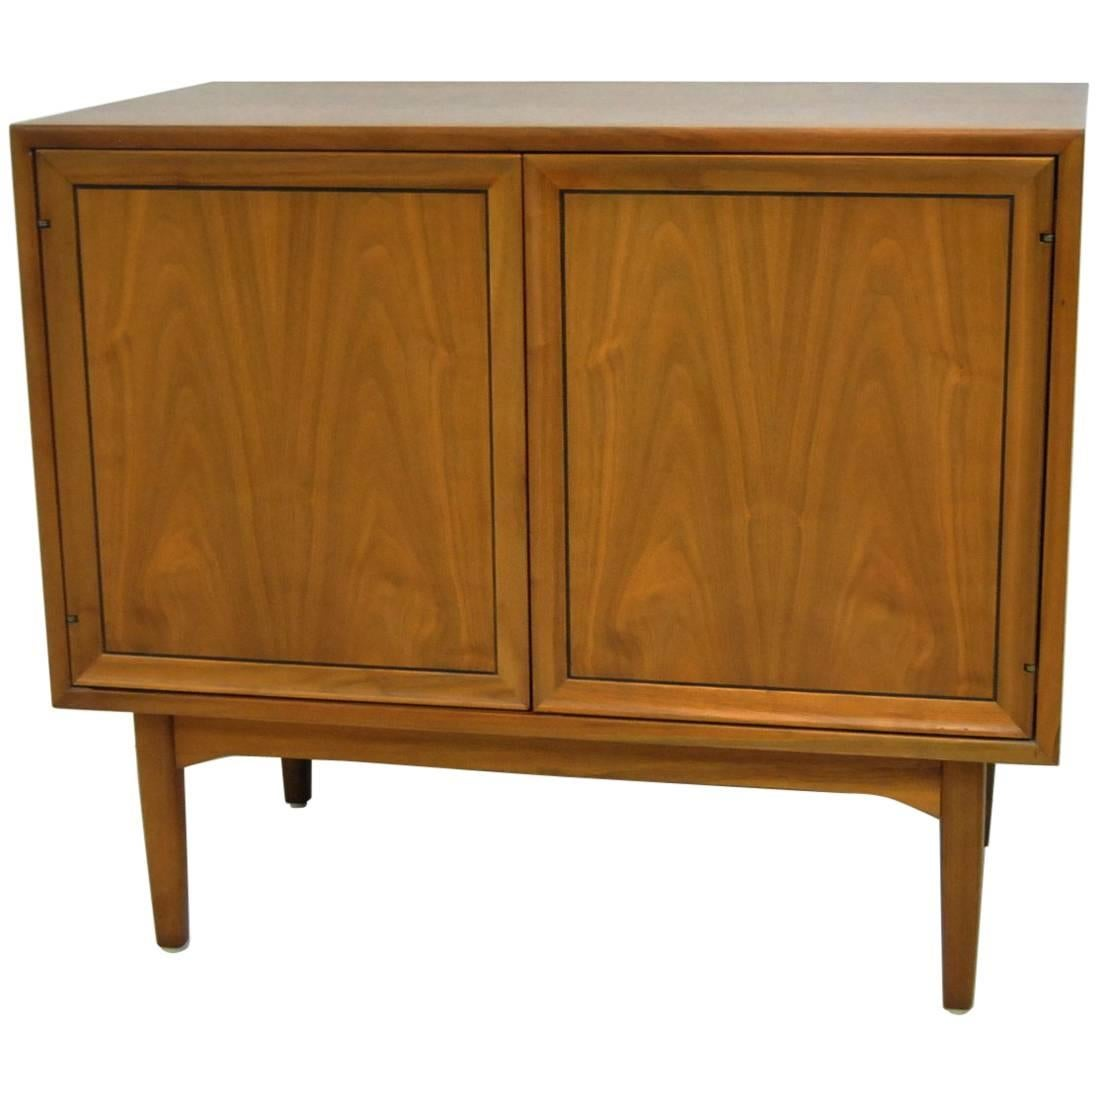 Exceptional Midcentury Walnut Record Cabinet By Drexel